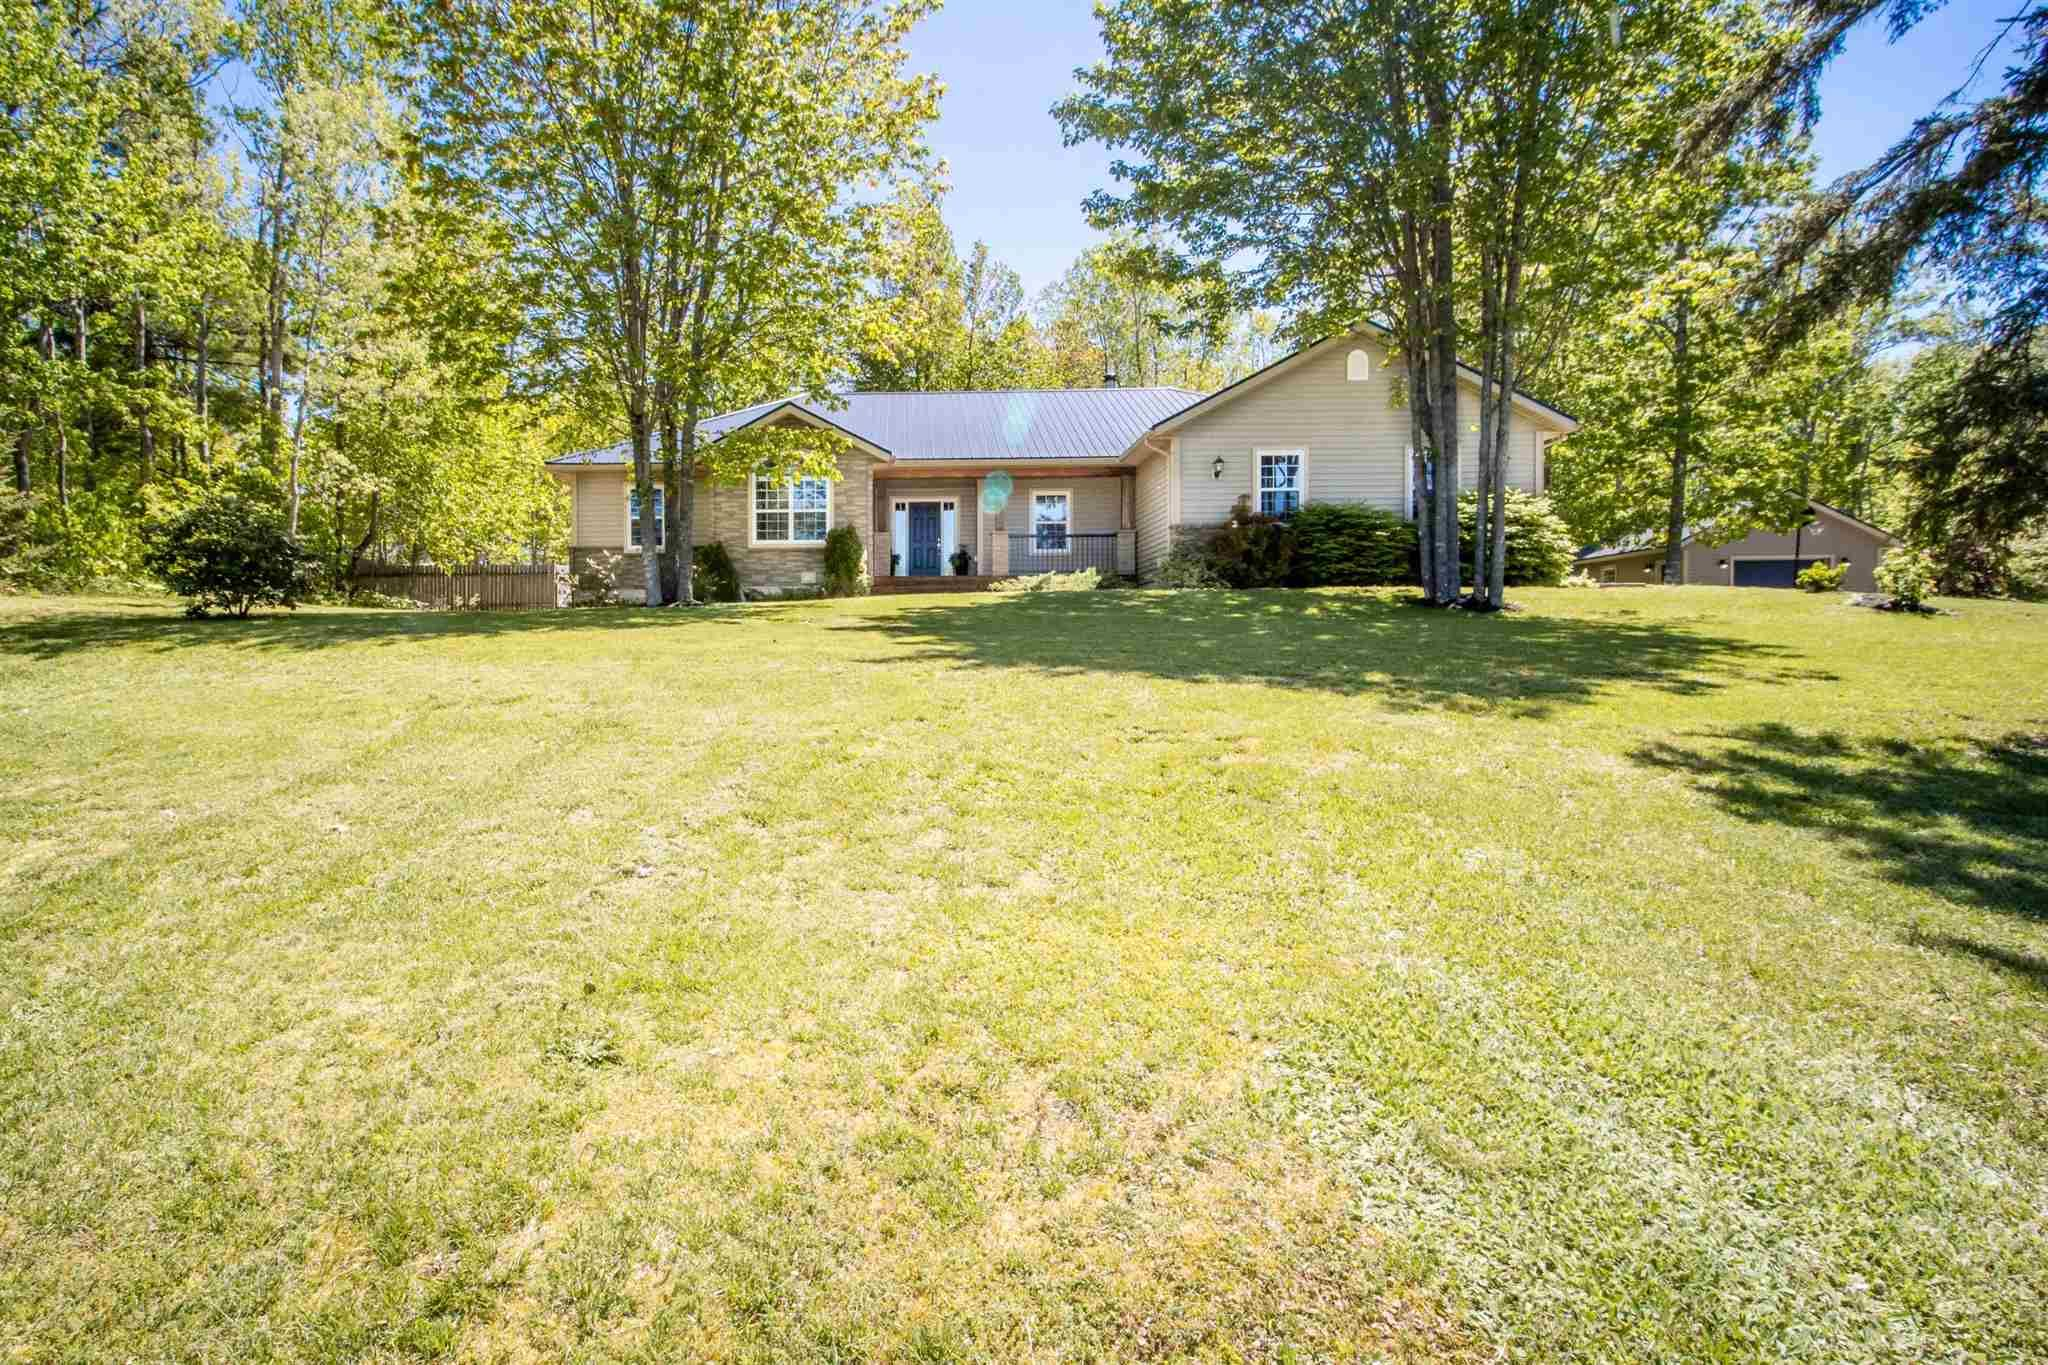 Main Photo: 79 Ronald Avenue in Cambridge: 404-Kings County Residential for sale (Annapolis Valley)  : MLS®# 202113973